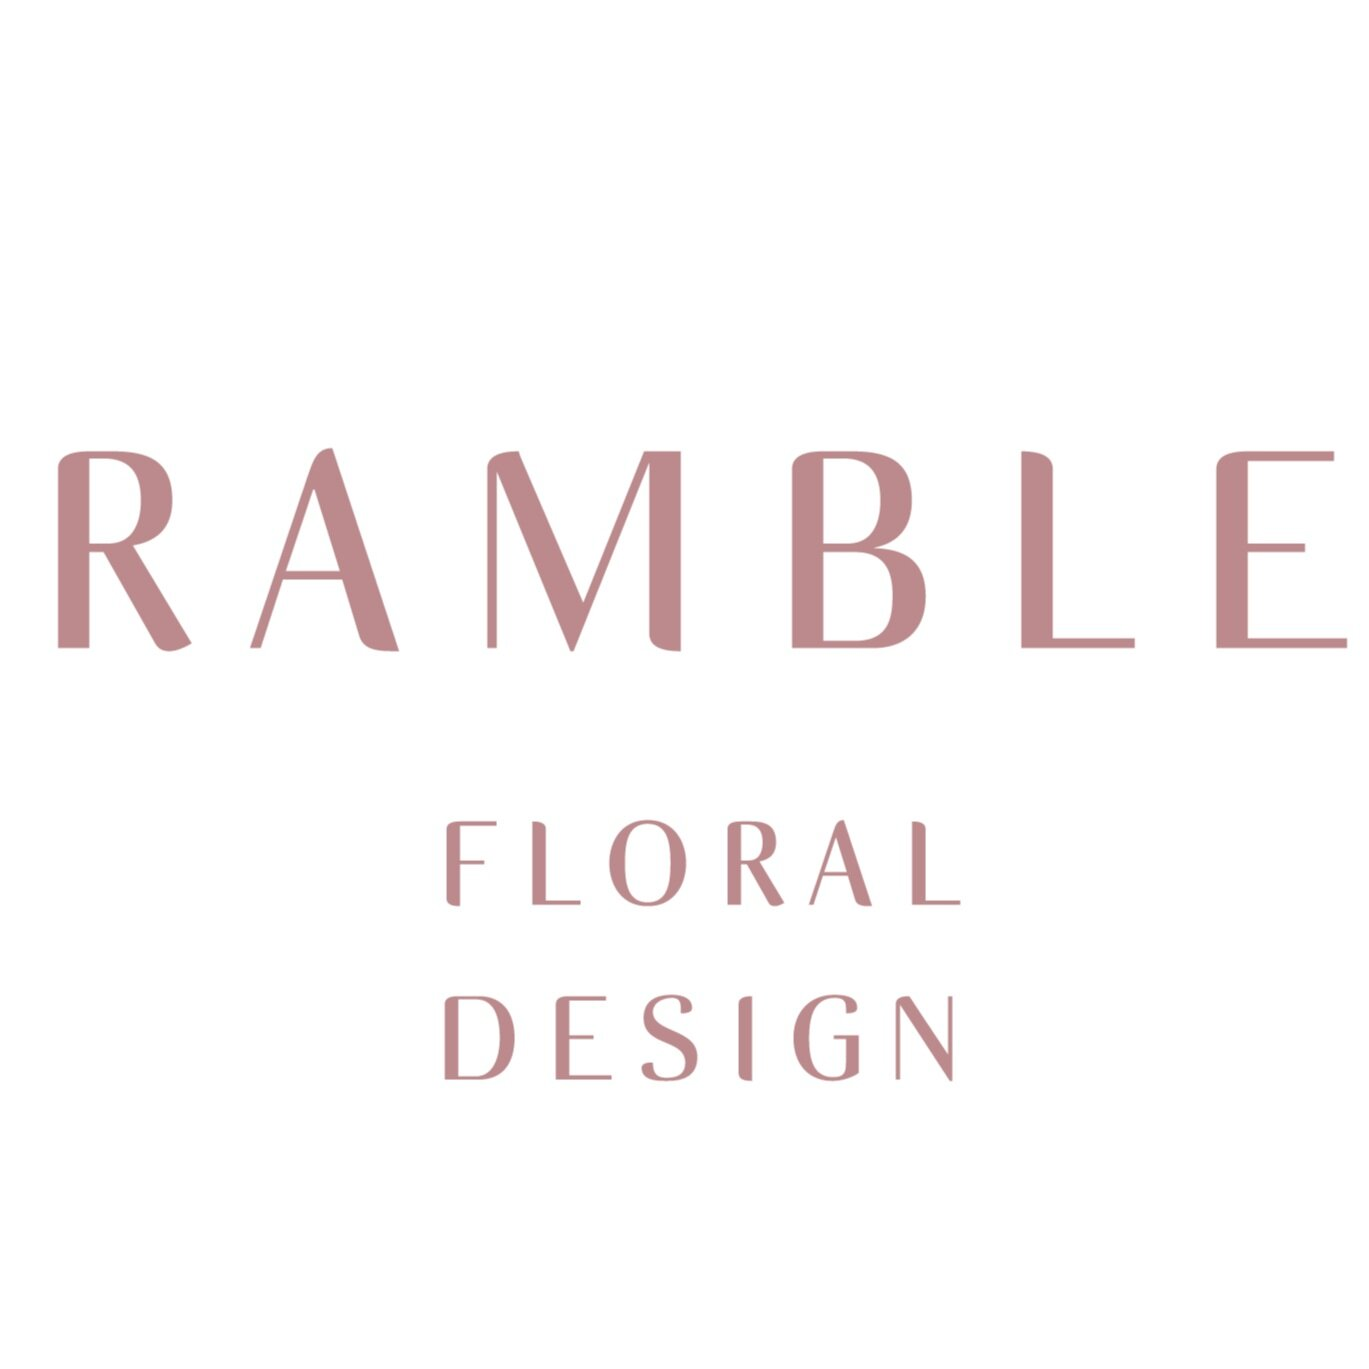 RAMBLE FLORAL DESIGN